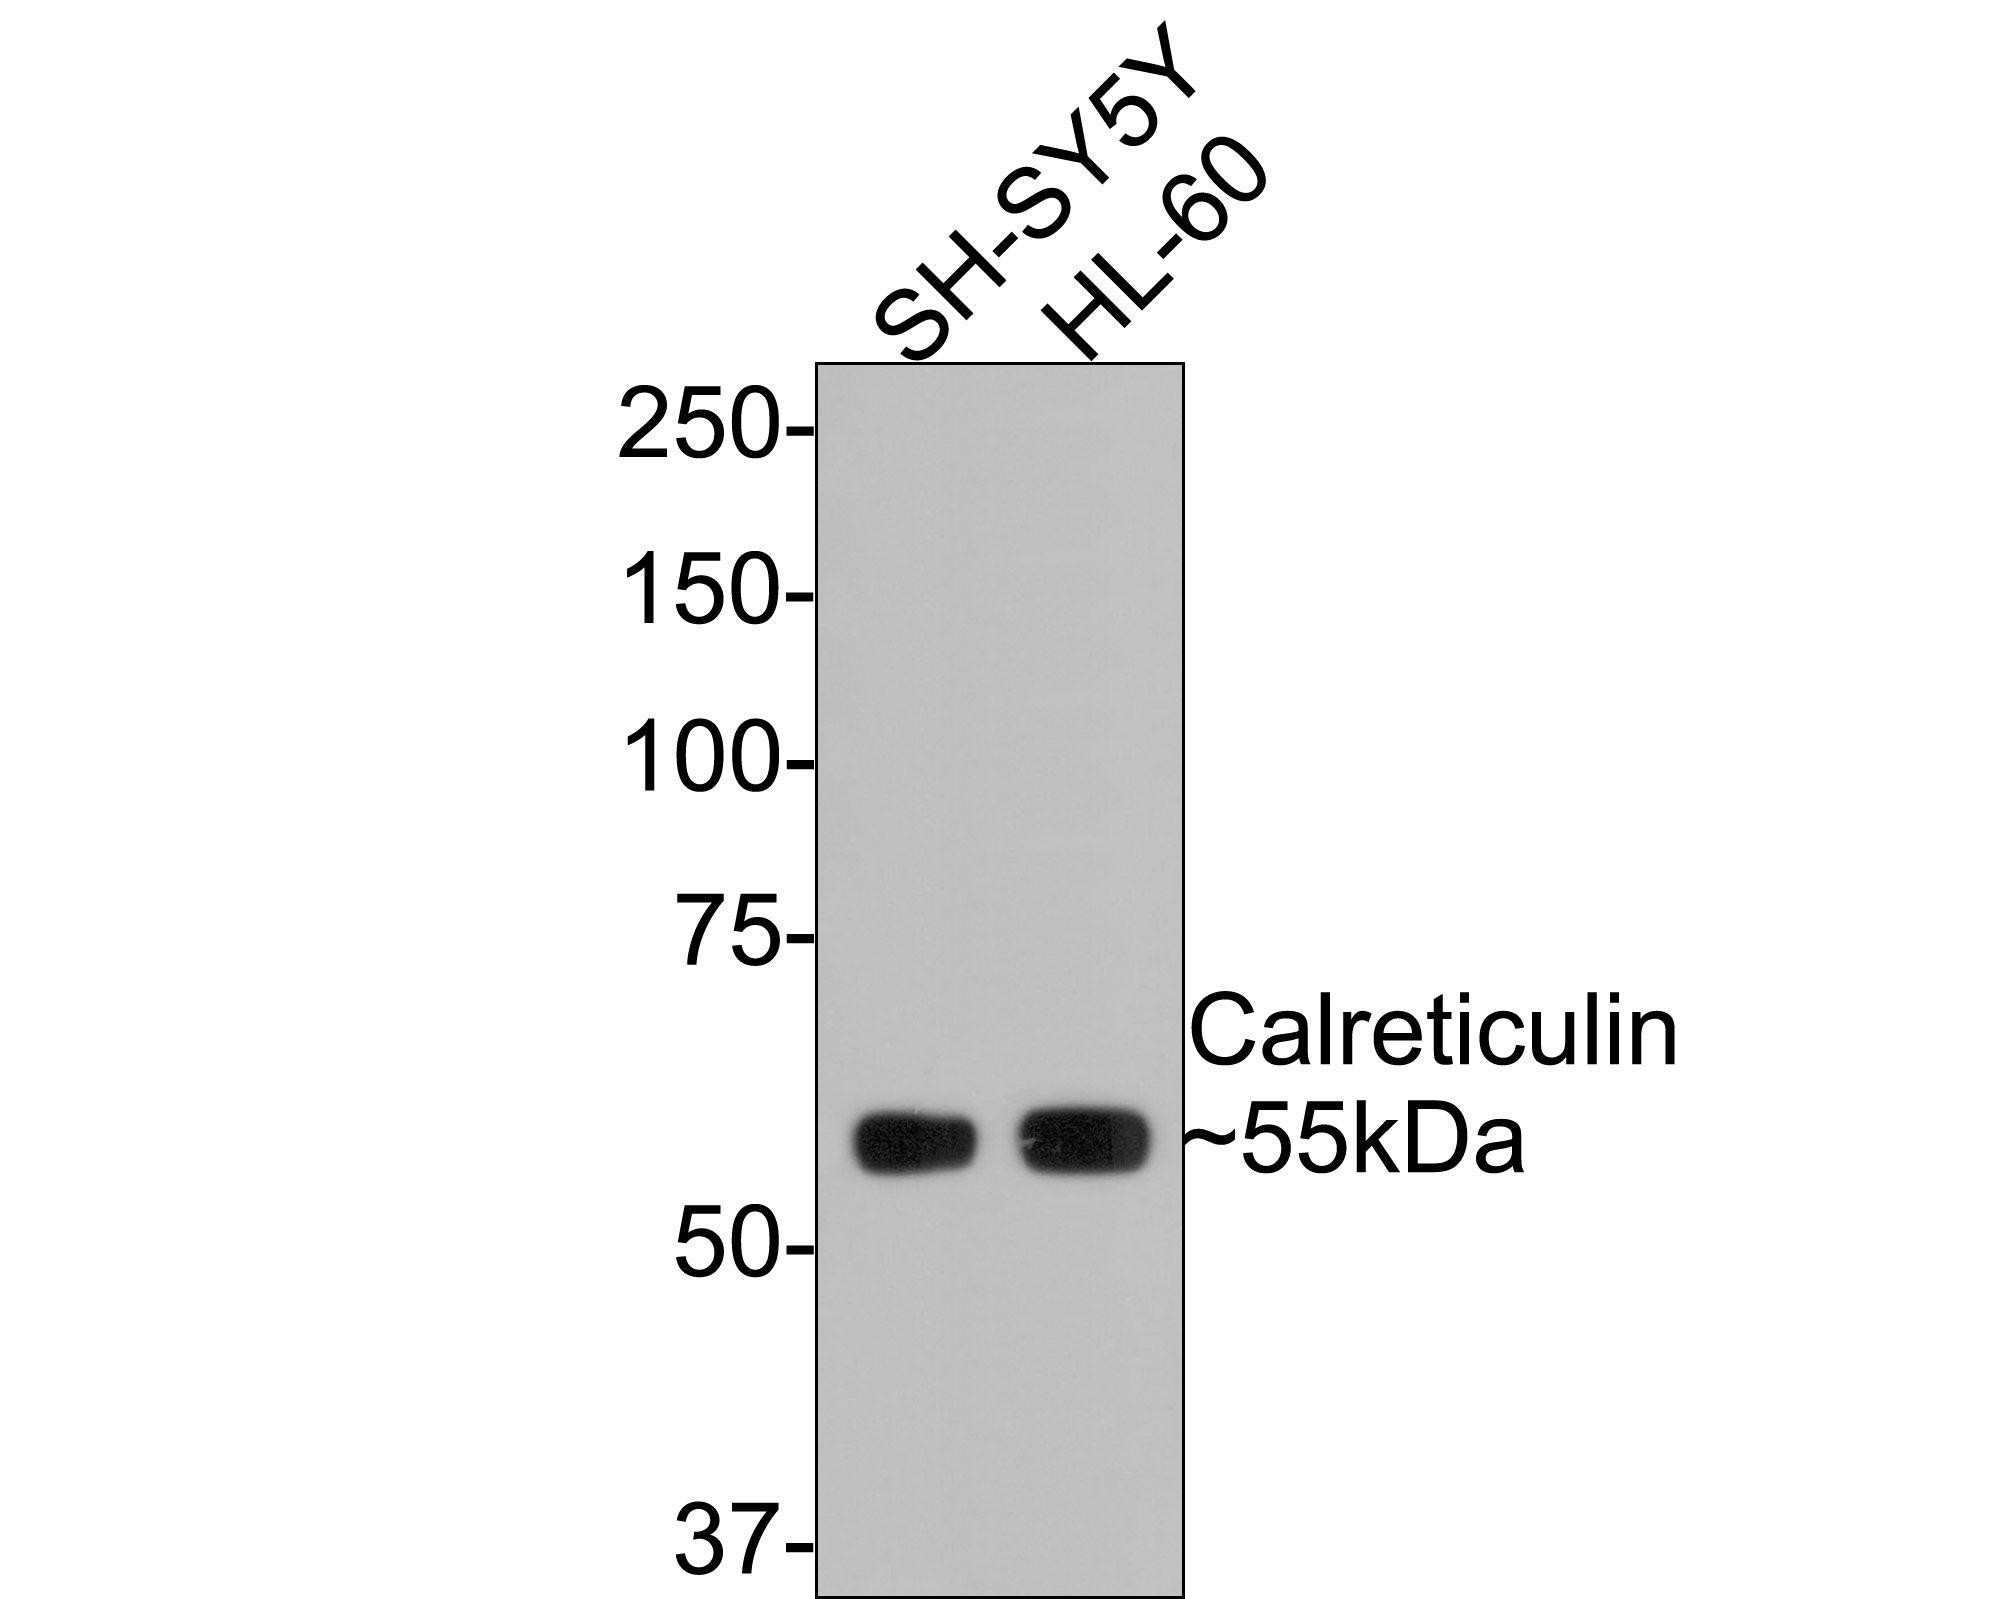 Western blot analysis of Calreticulin on different lysates. Proteins were transferred to a PVDF membrane and blocked with 5% BSA in PBS for 1 hour at room temperature. The primary antibody (ET1608-60, 1/500) was used in 5% BSA at room temperature for 2 hours. Goat Anti-Rabbit IgG - HRP Secondary Antibody (HA1001) at 1:5,000 dilution was used for 1 hour at room temperature.<br /> Positive control: <br /> Lane 1: SH-SY5Y cell lysate<br /> Lane 2: HL-60 cell lysate